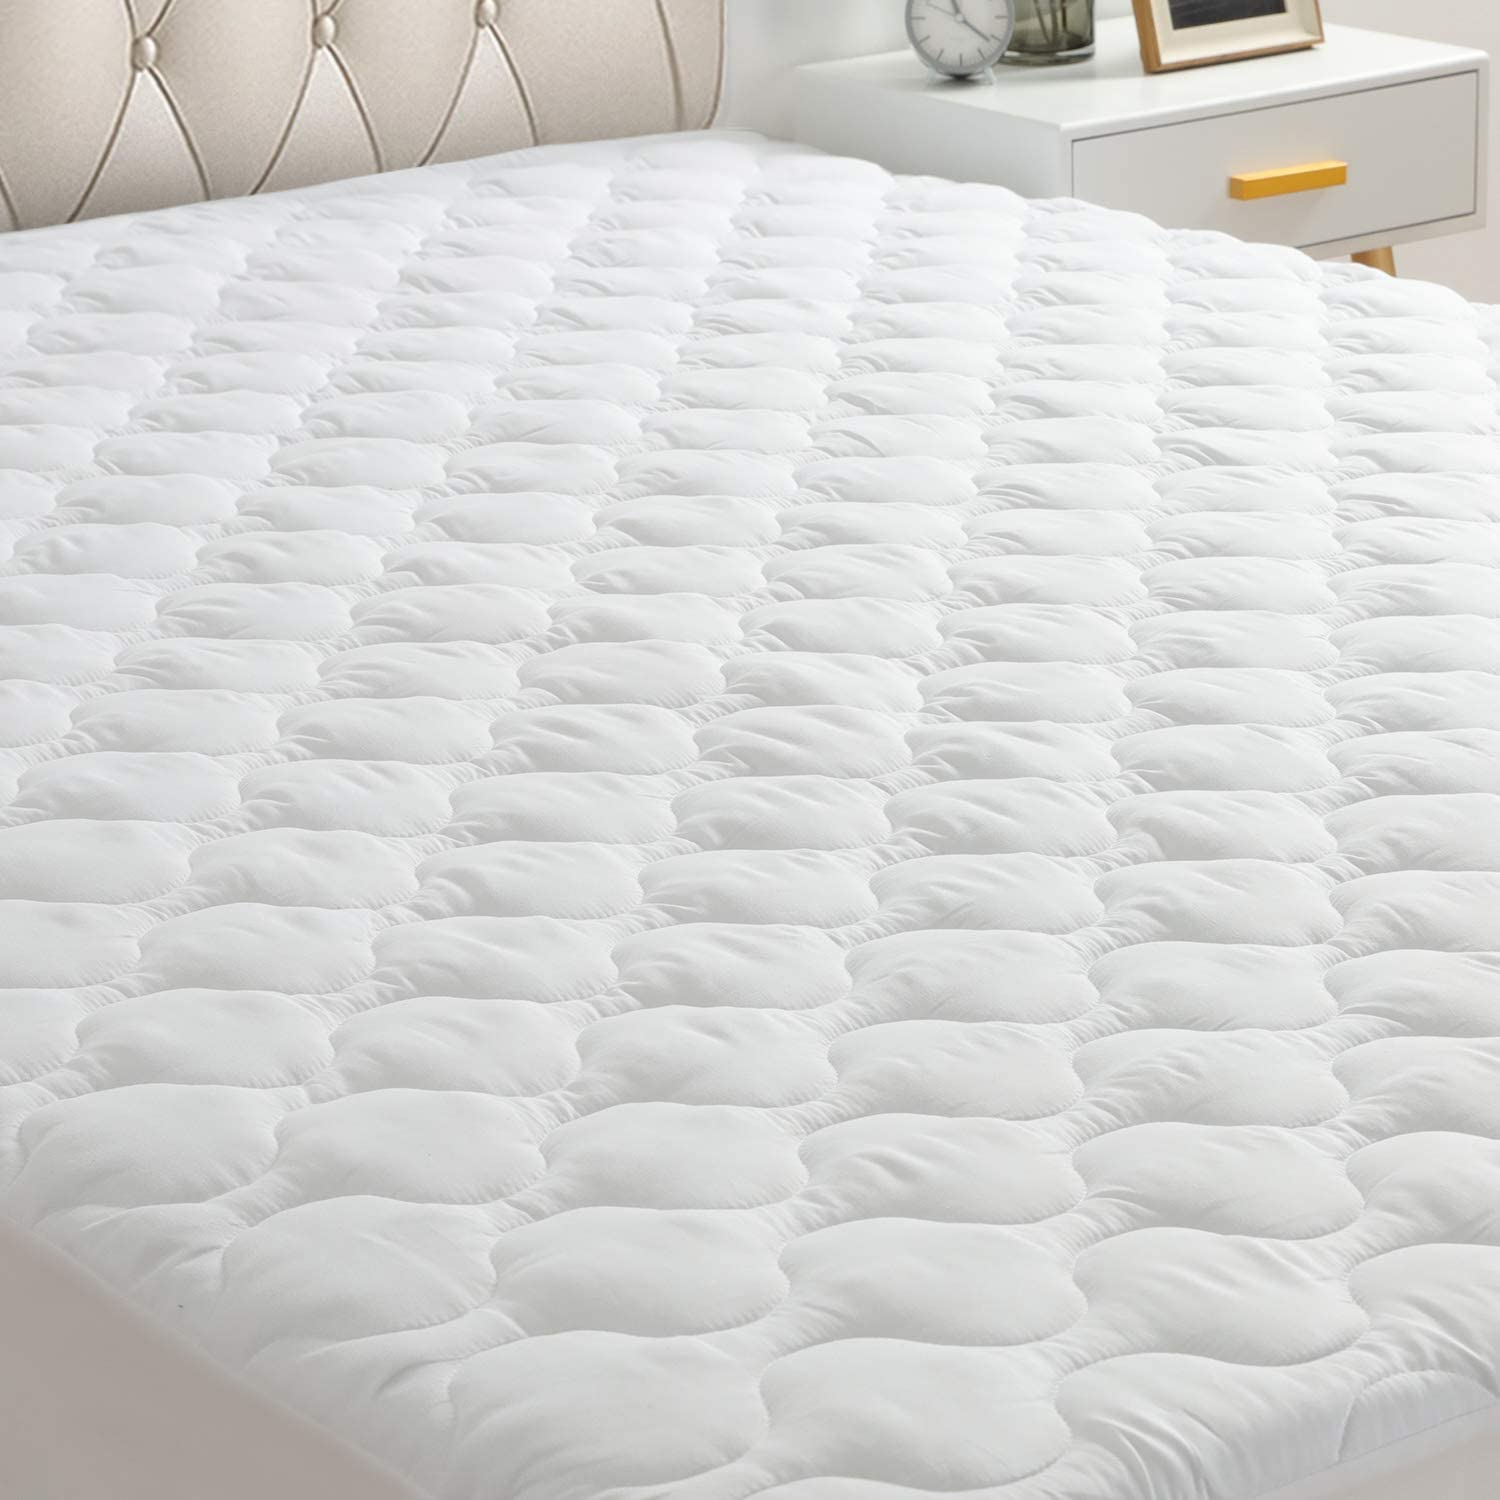 "HYLEORY Queen Mattress Pad Cover Stretches up 8-21"" Deep Pocket - Hypoallergenic Fitted Cooling Mattress Topper with Snow Down Alternative (White, Queen)"